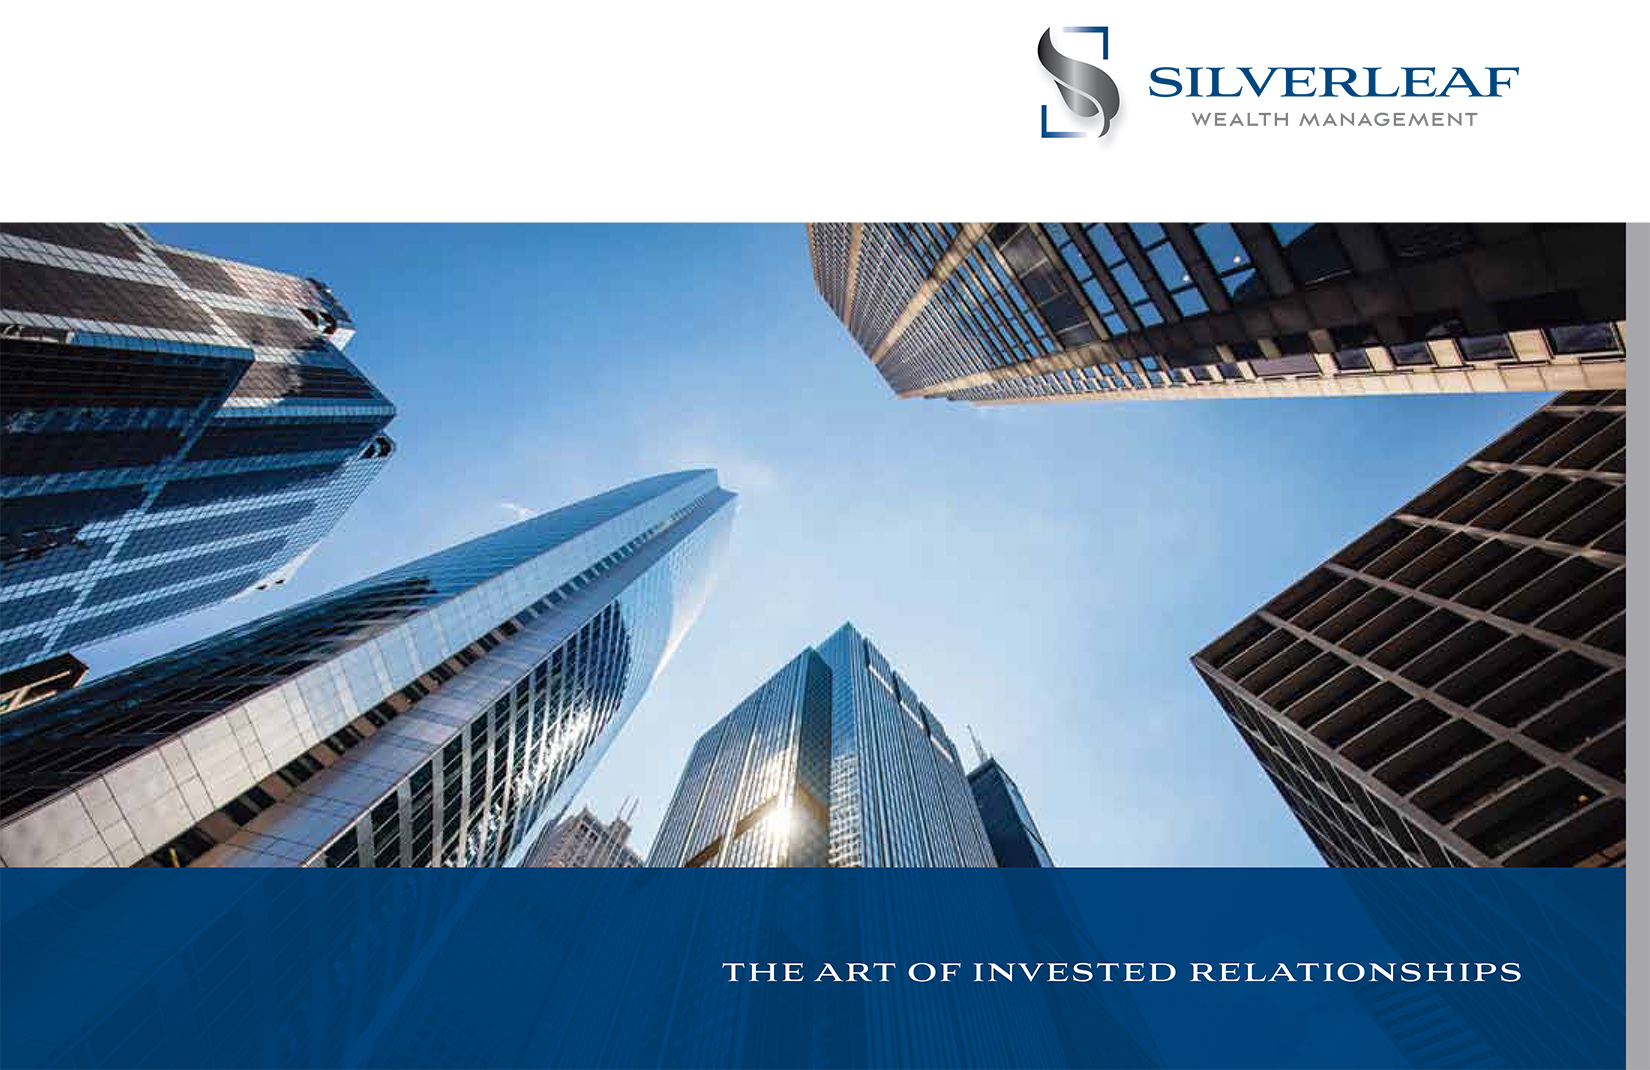 Silverleaf Retirement Financial Investment & Wealth Management Company Brochure